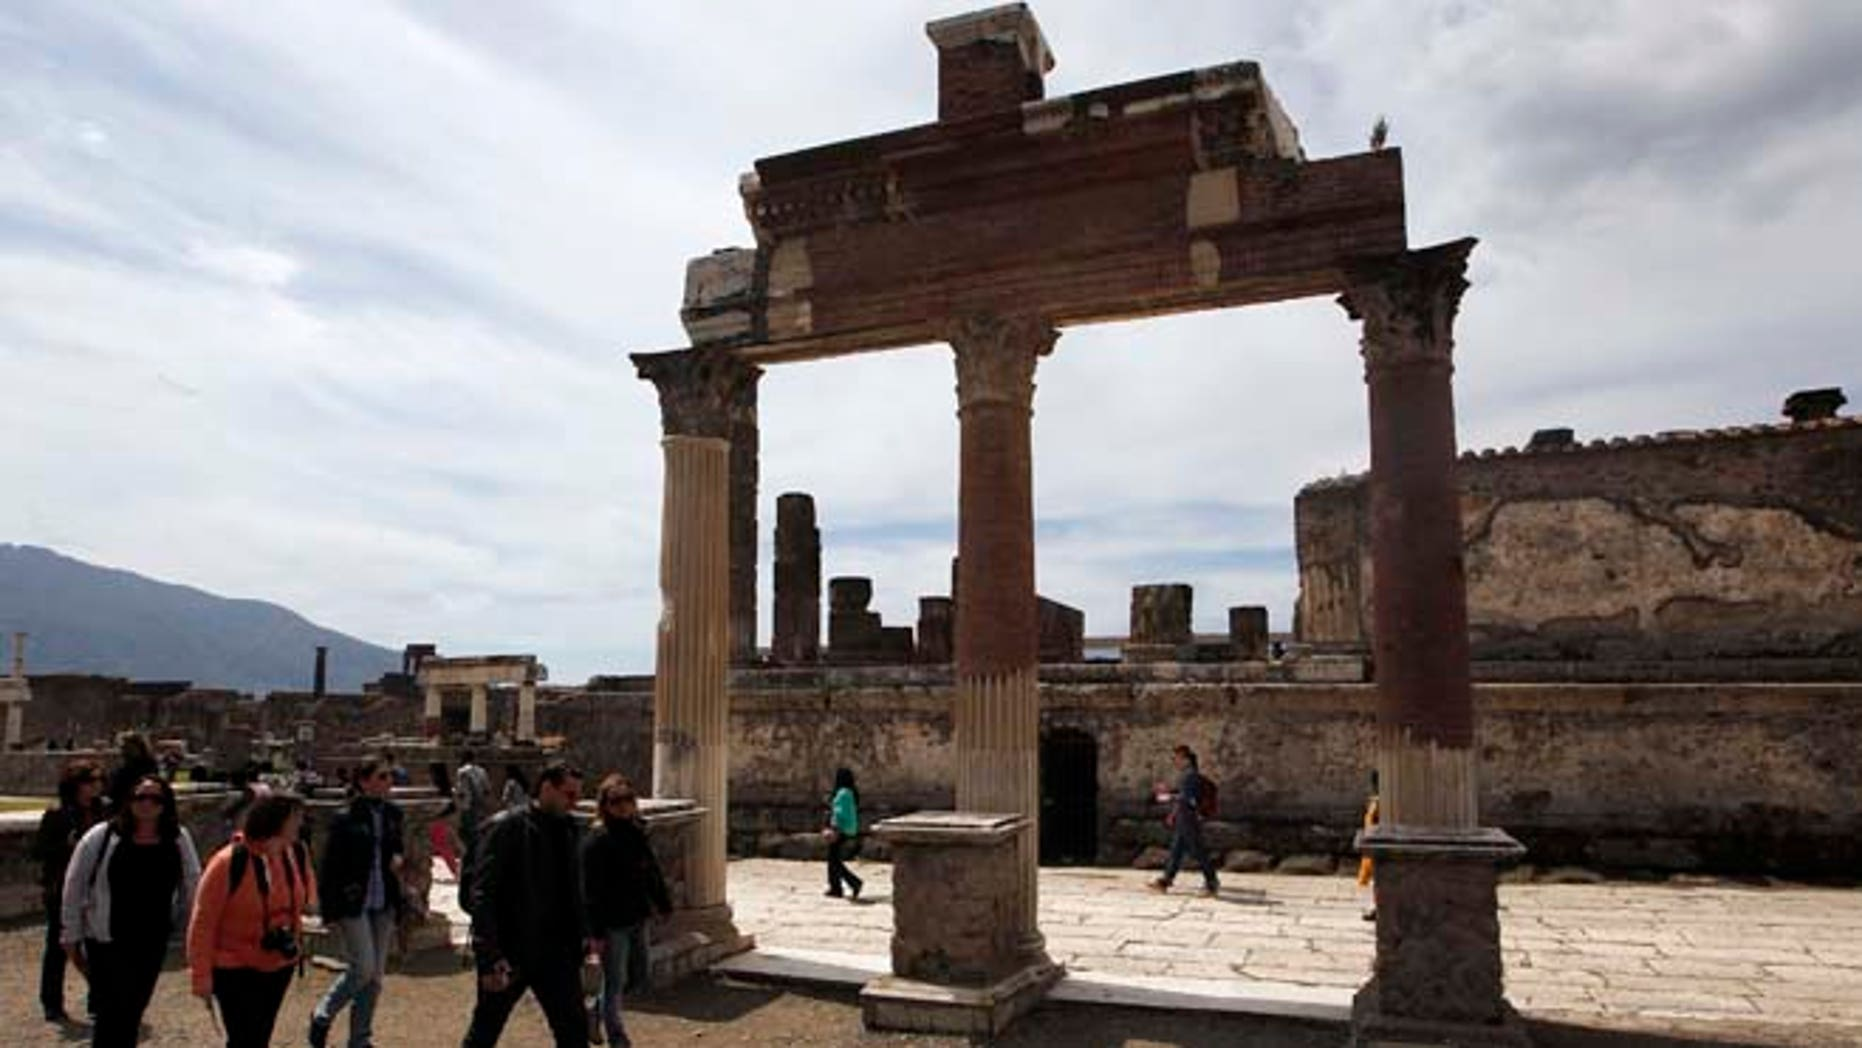 April 17, 2015: People visit the ruins at the ancient archaeological site of Pompeii.